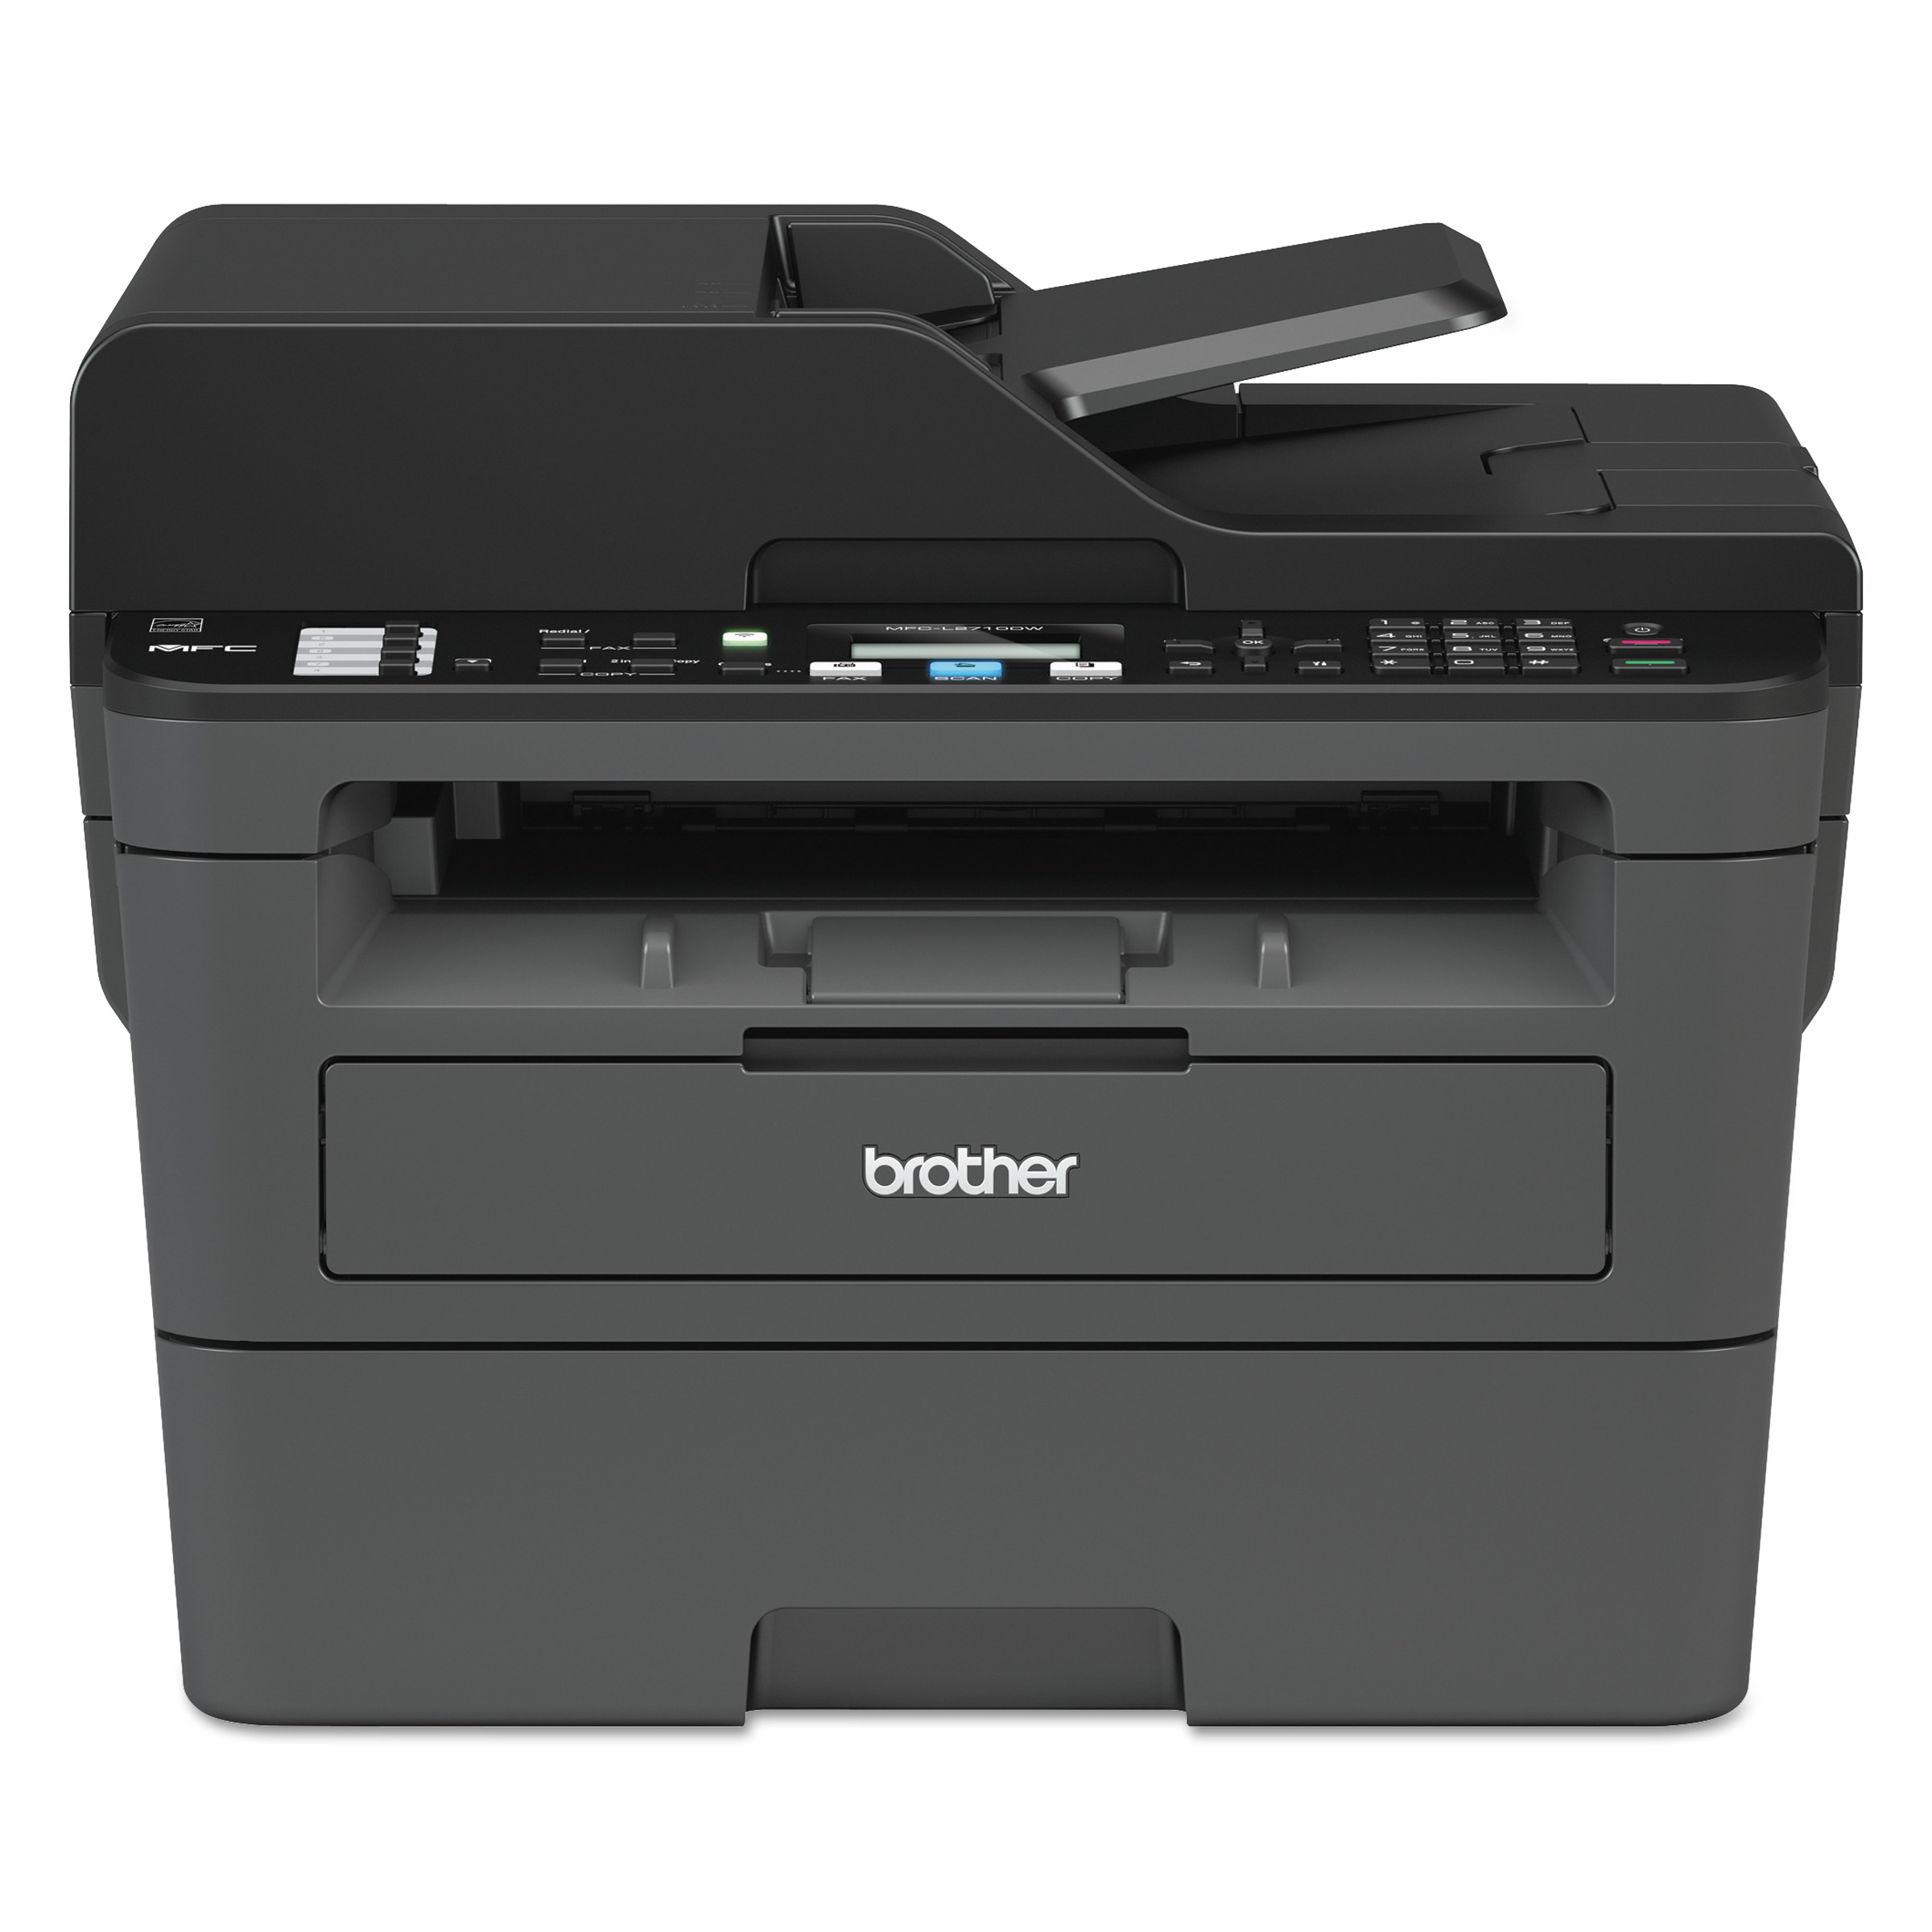 Brother Printer Driver for Windows 10